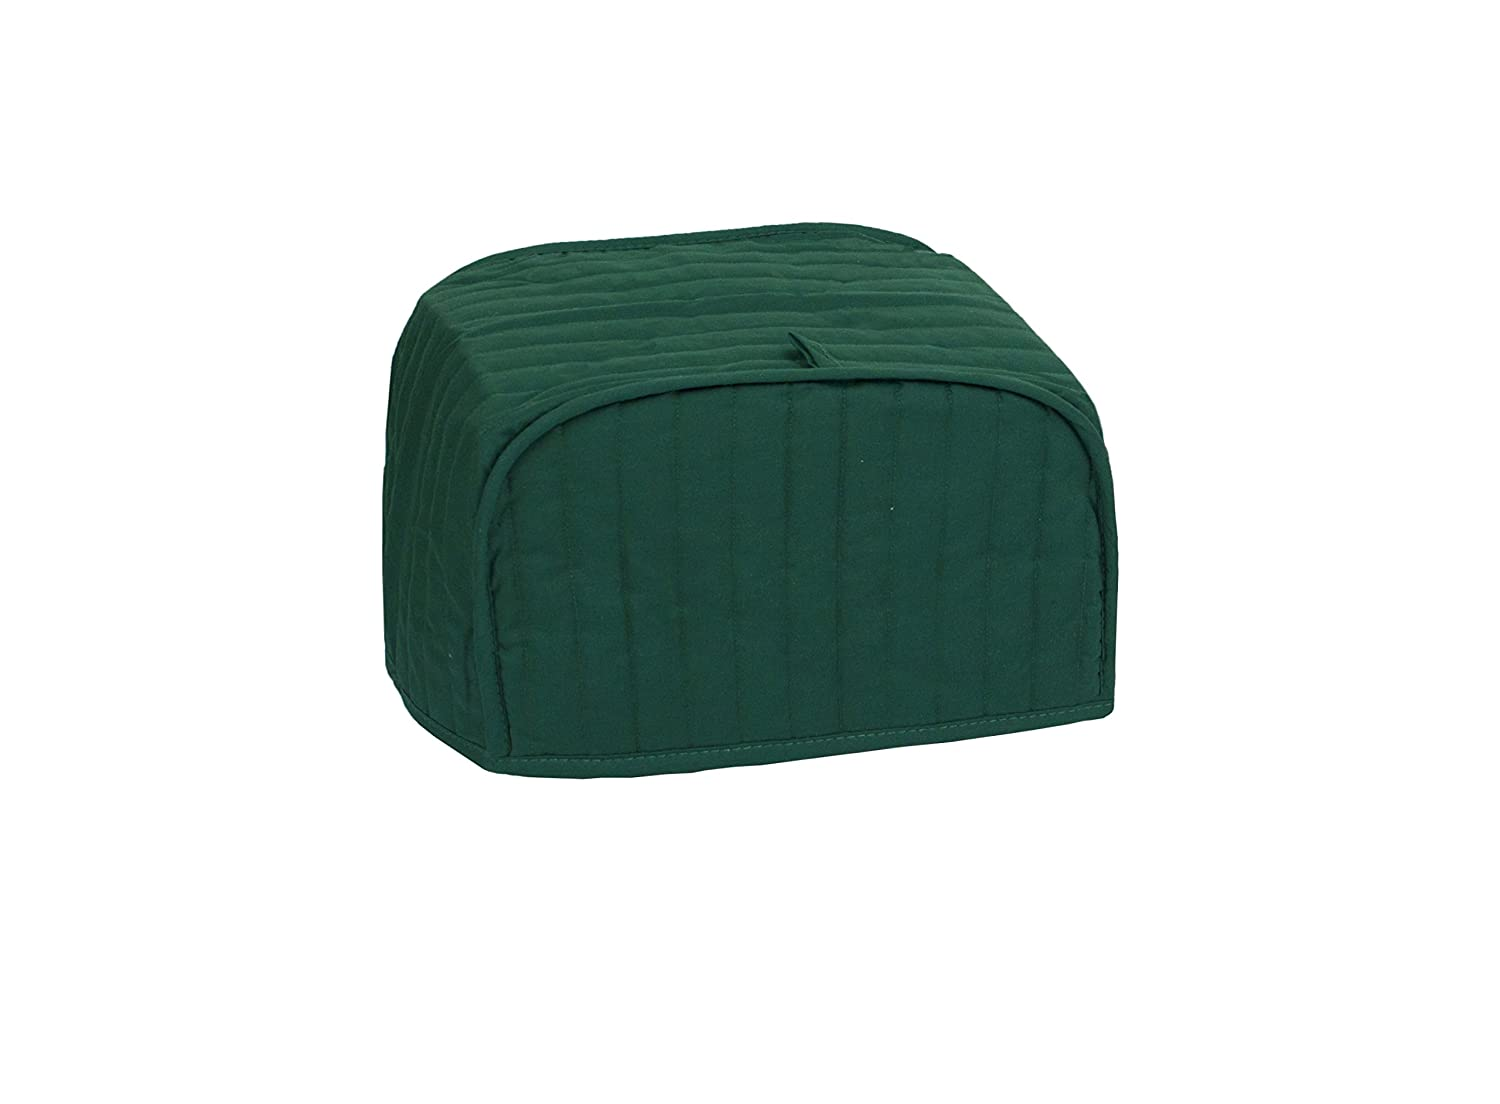 RITZ Polyester / Cotton Quilted Two Slice Toaster Appliance Cover, Dust and Fingerprint Protection, Machine Washable, Dark Green